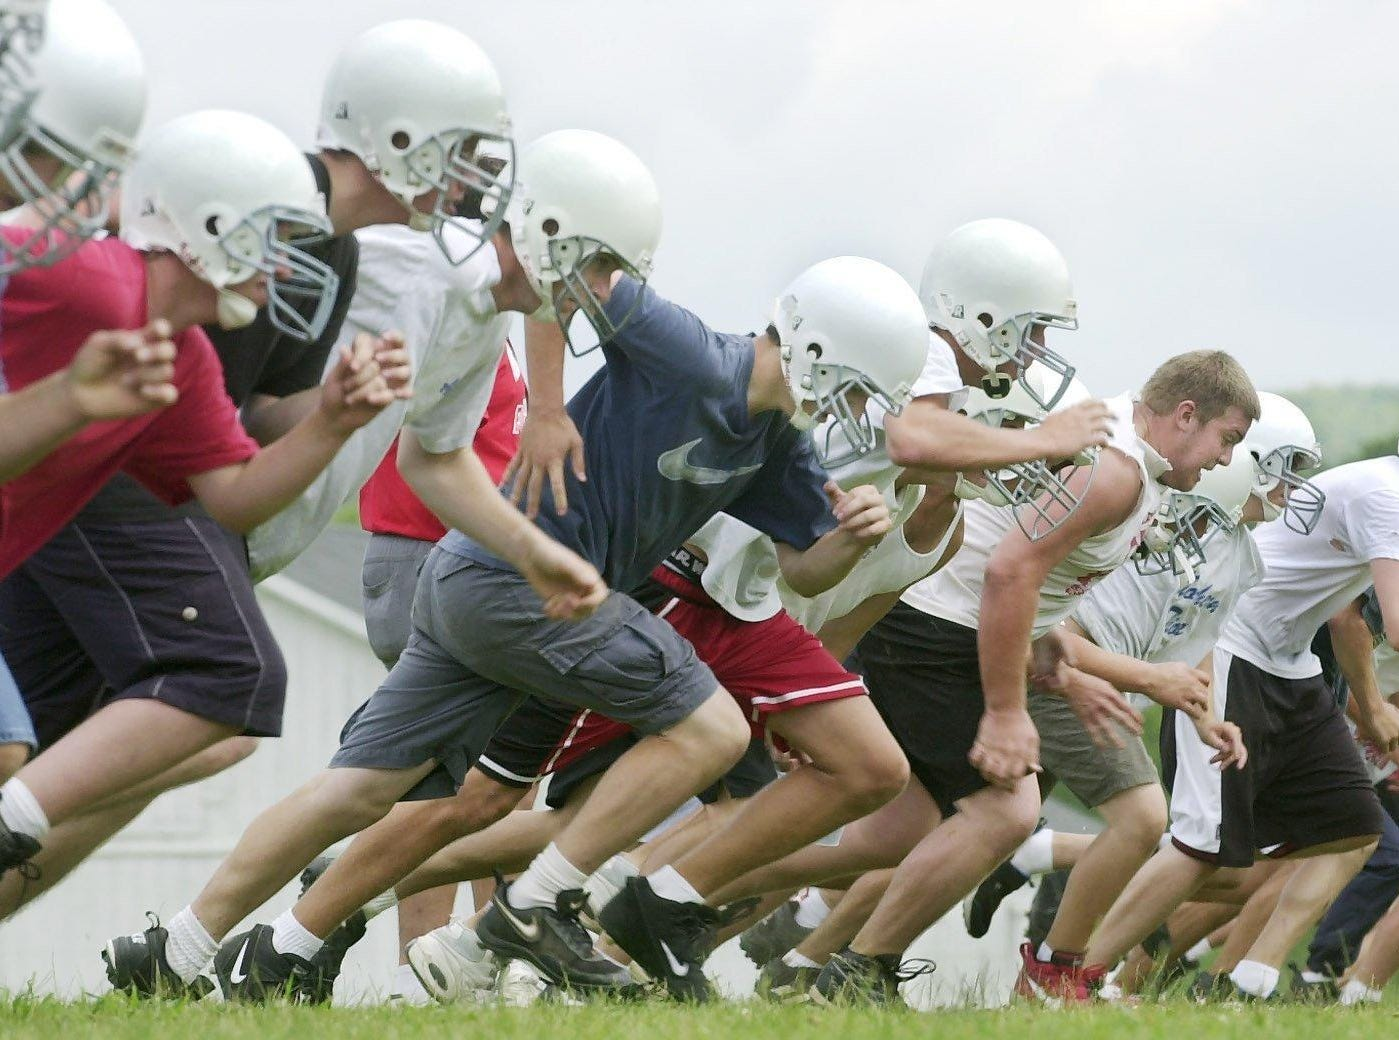 From 2001: Newark Valley High School football team sprinting during practice.